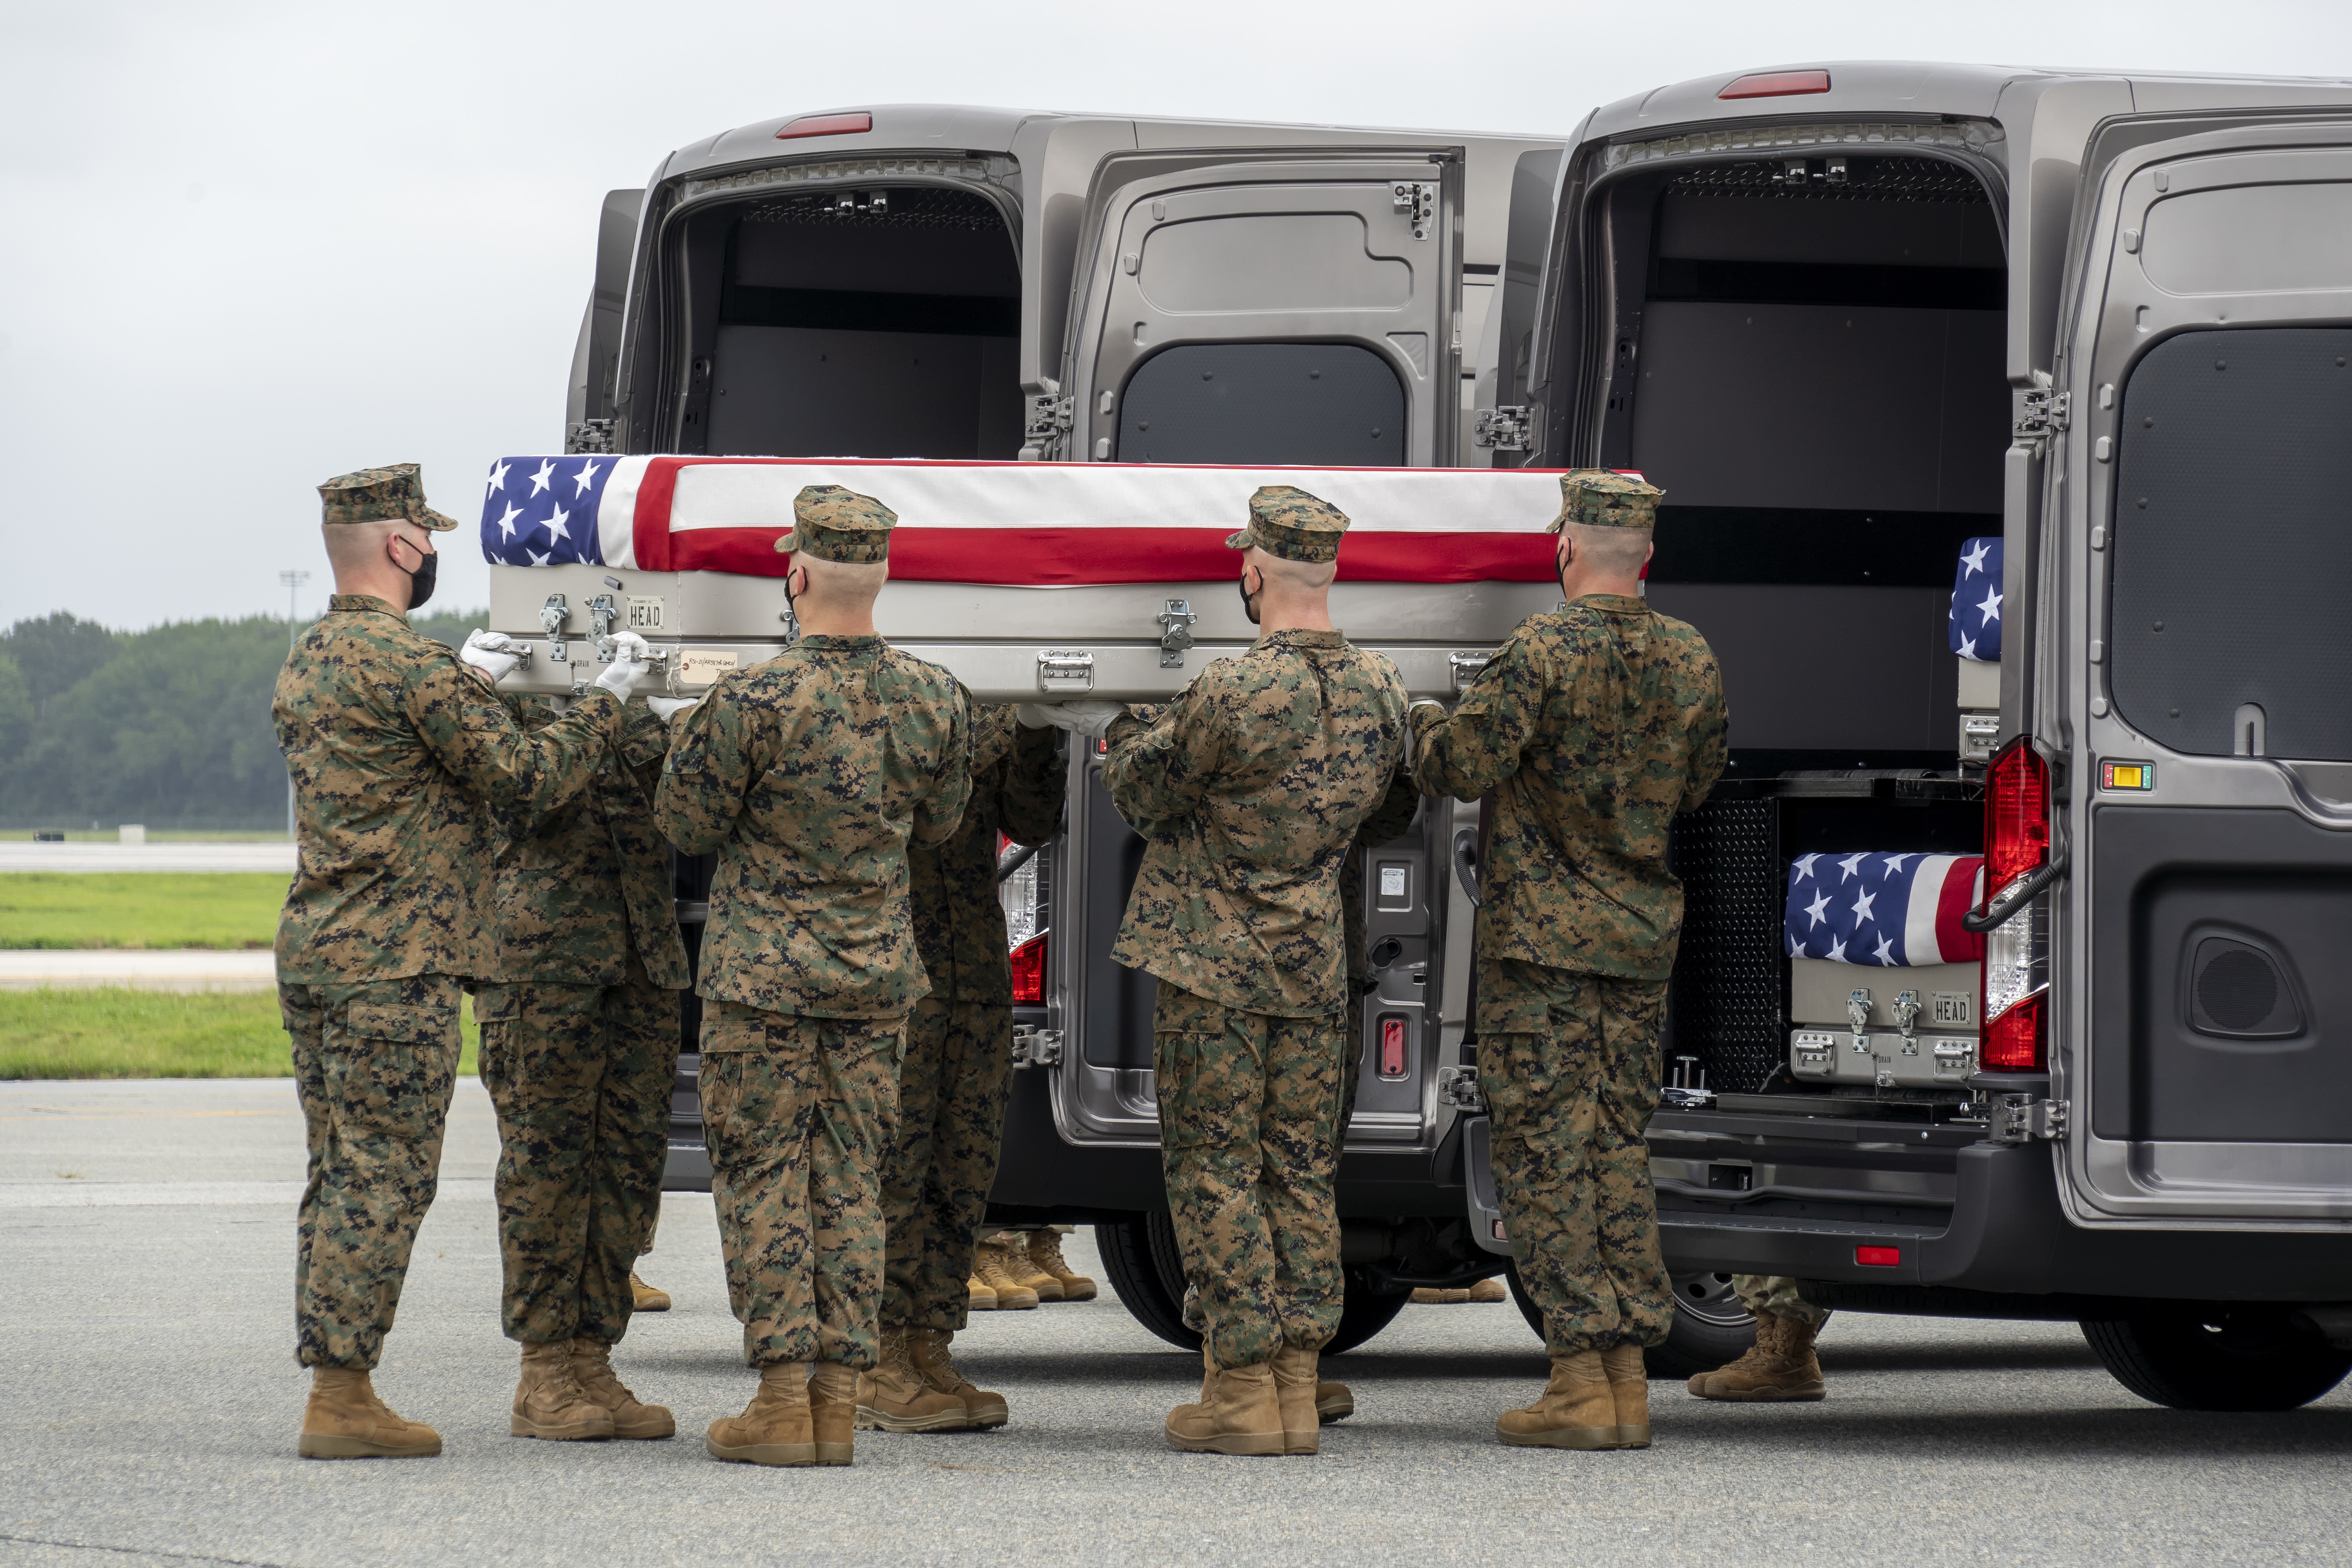 In this handout photo provided by the U.S. Air Force, a U.S. Marine Corps carry team transfers the remains of Marine Corps Lance Cpl. Kareem M. Nikoui of Norco, California, Aug. 29, 2021 at Dover Air Force Base, Delaware. Nikoui was assigned to 2nd Battalion, 1st Marine Regiment, 1st Marine Division, I Marine Expeditionary Force, Camp Pendleton, California. (Photo by Jason Minto/U.S. Air Force via Getty Images)